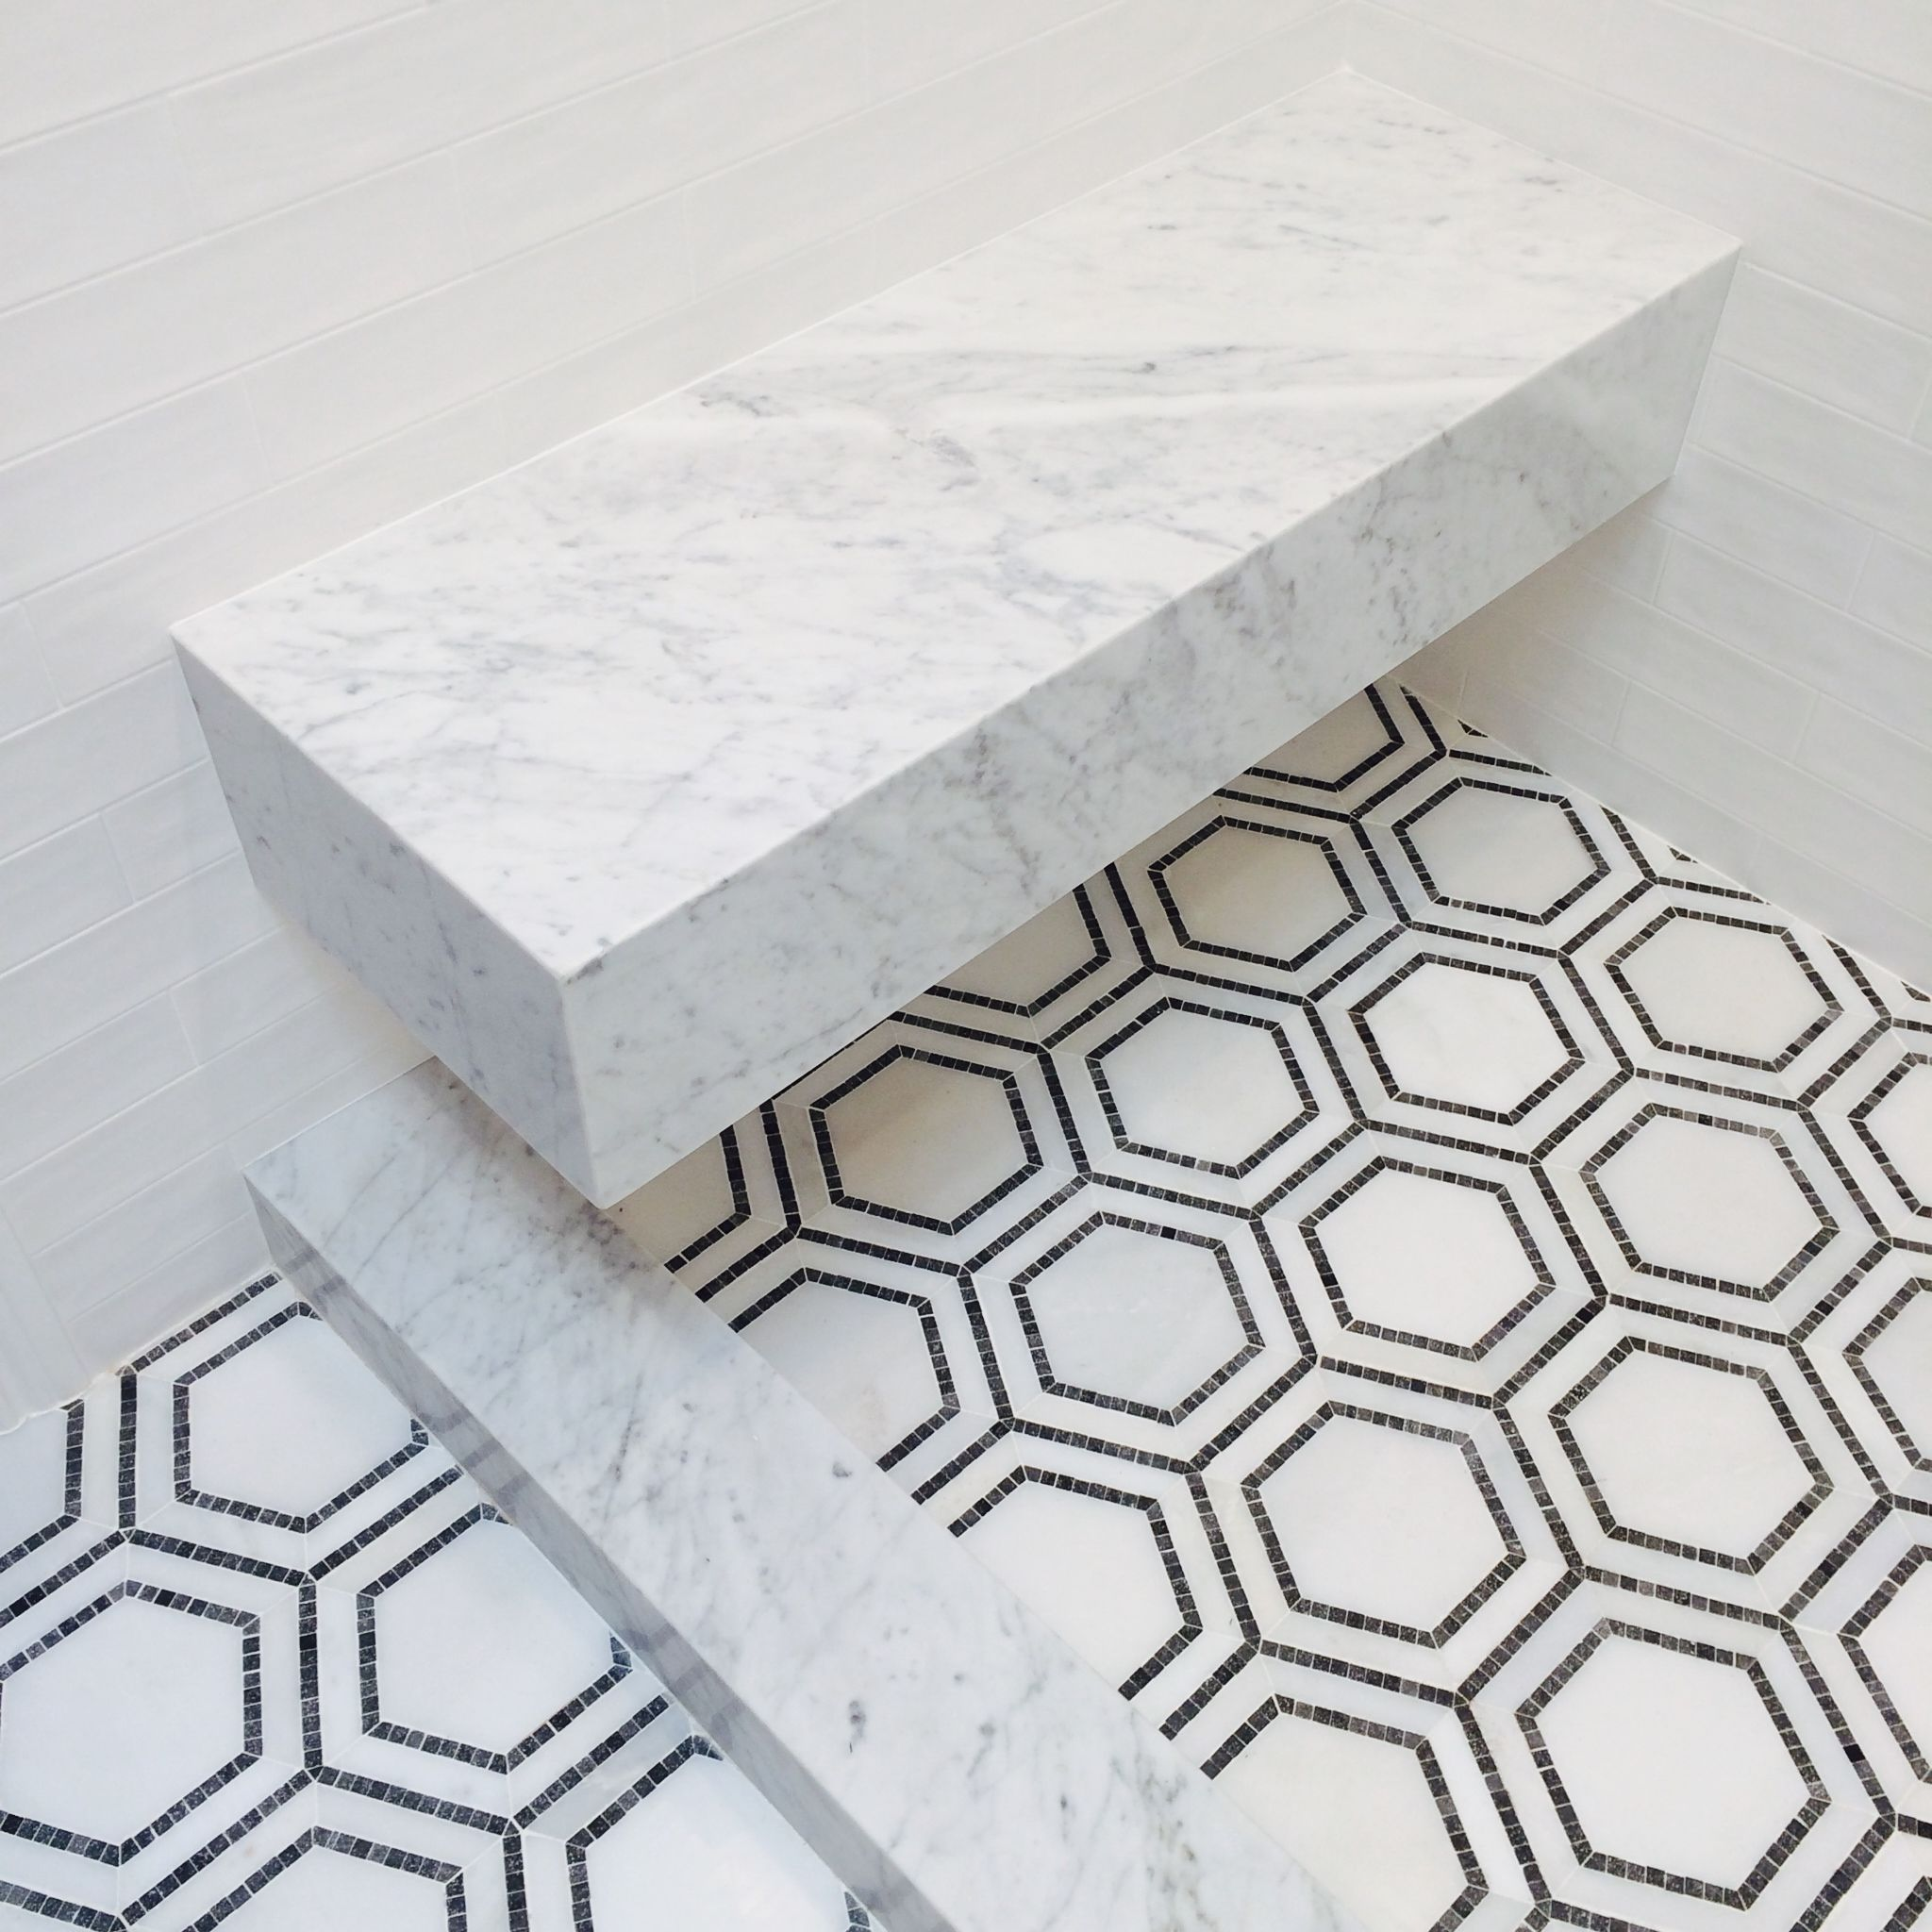 Hex pattern tile floor bathroom grant gibson bathroom hex pattern tile floor bathroom grant gibson dailygadgetfo Image collections